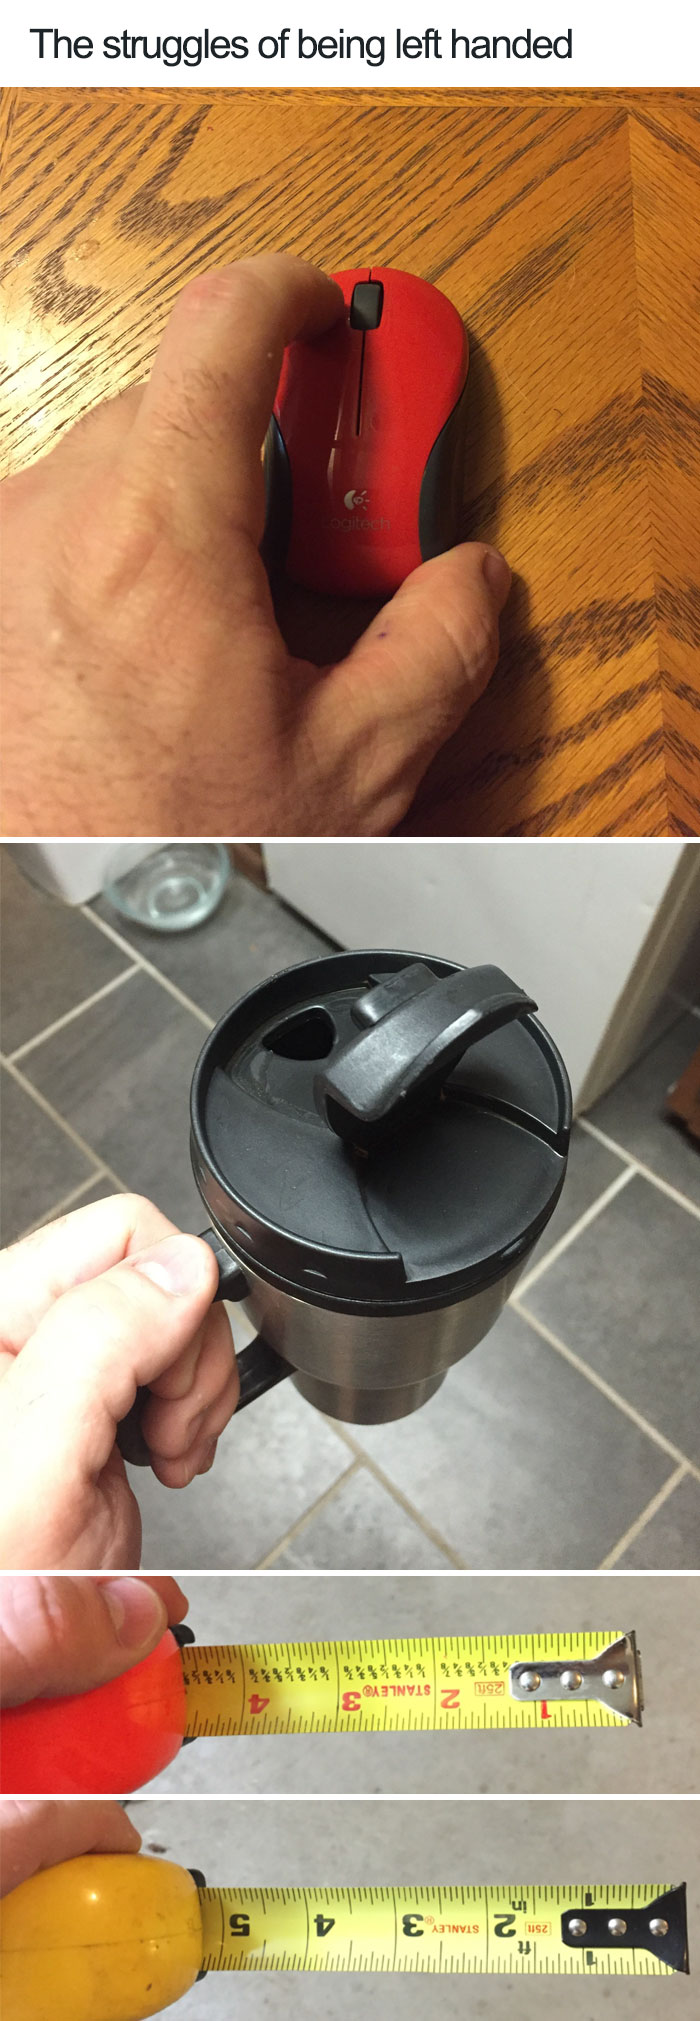 45+ Pics That Reveal The Horrors Of Being Left-Handed